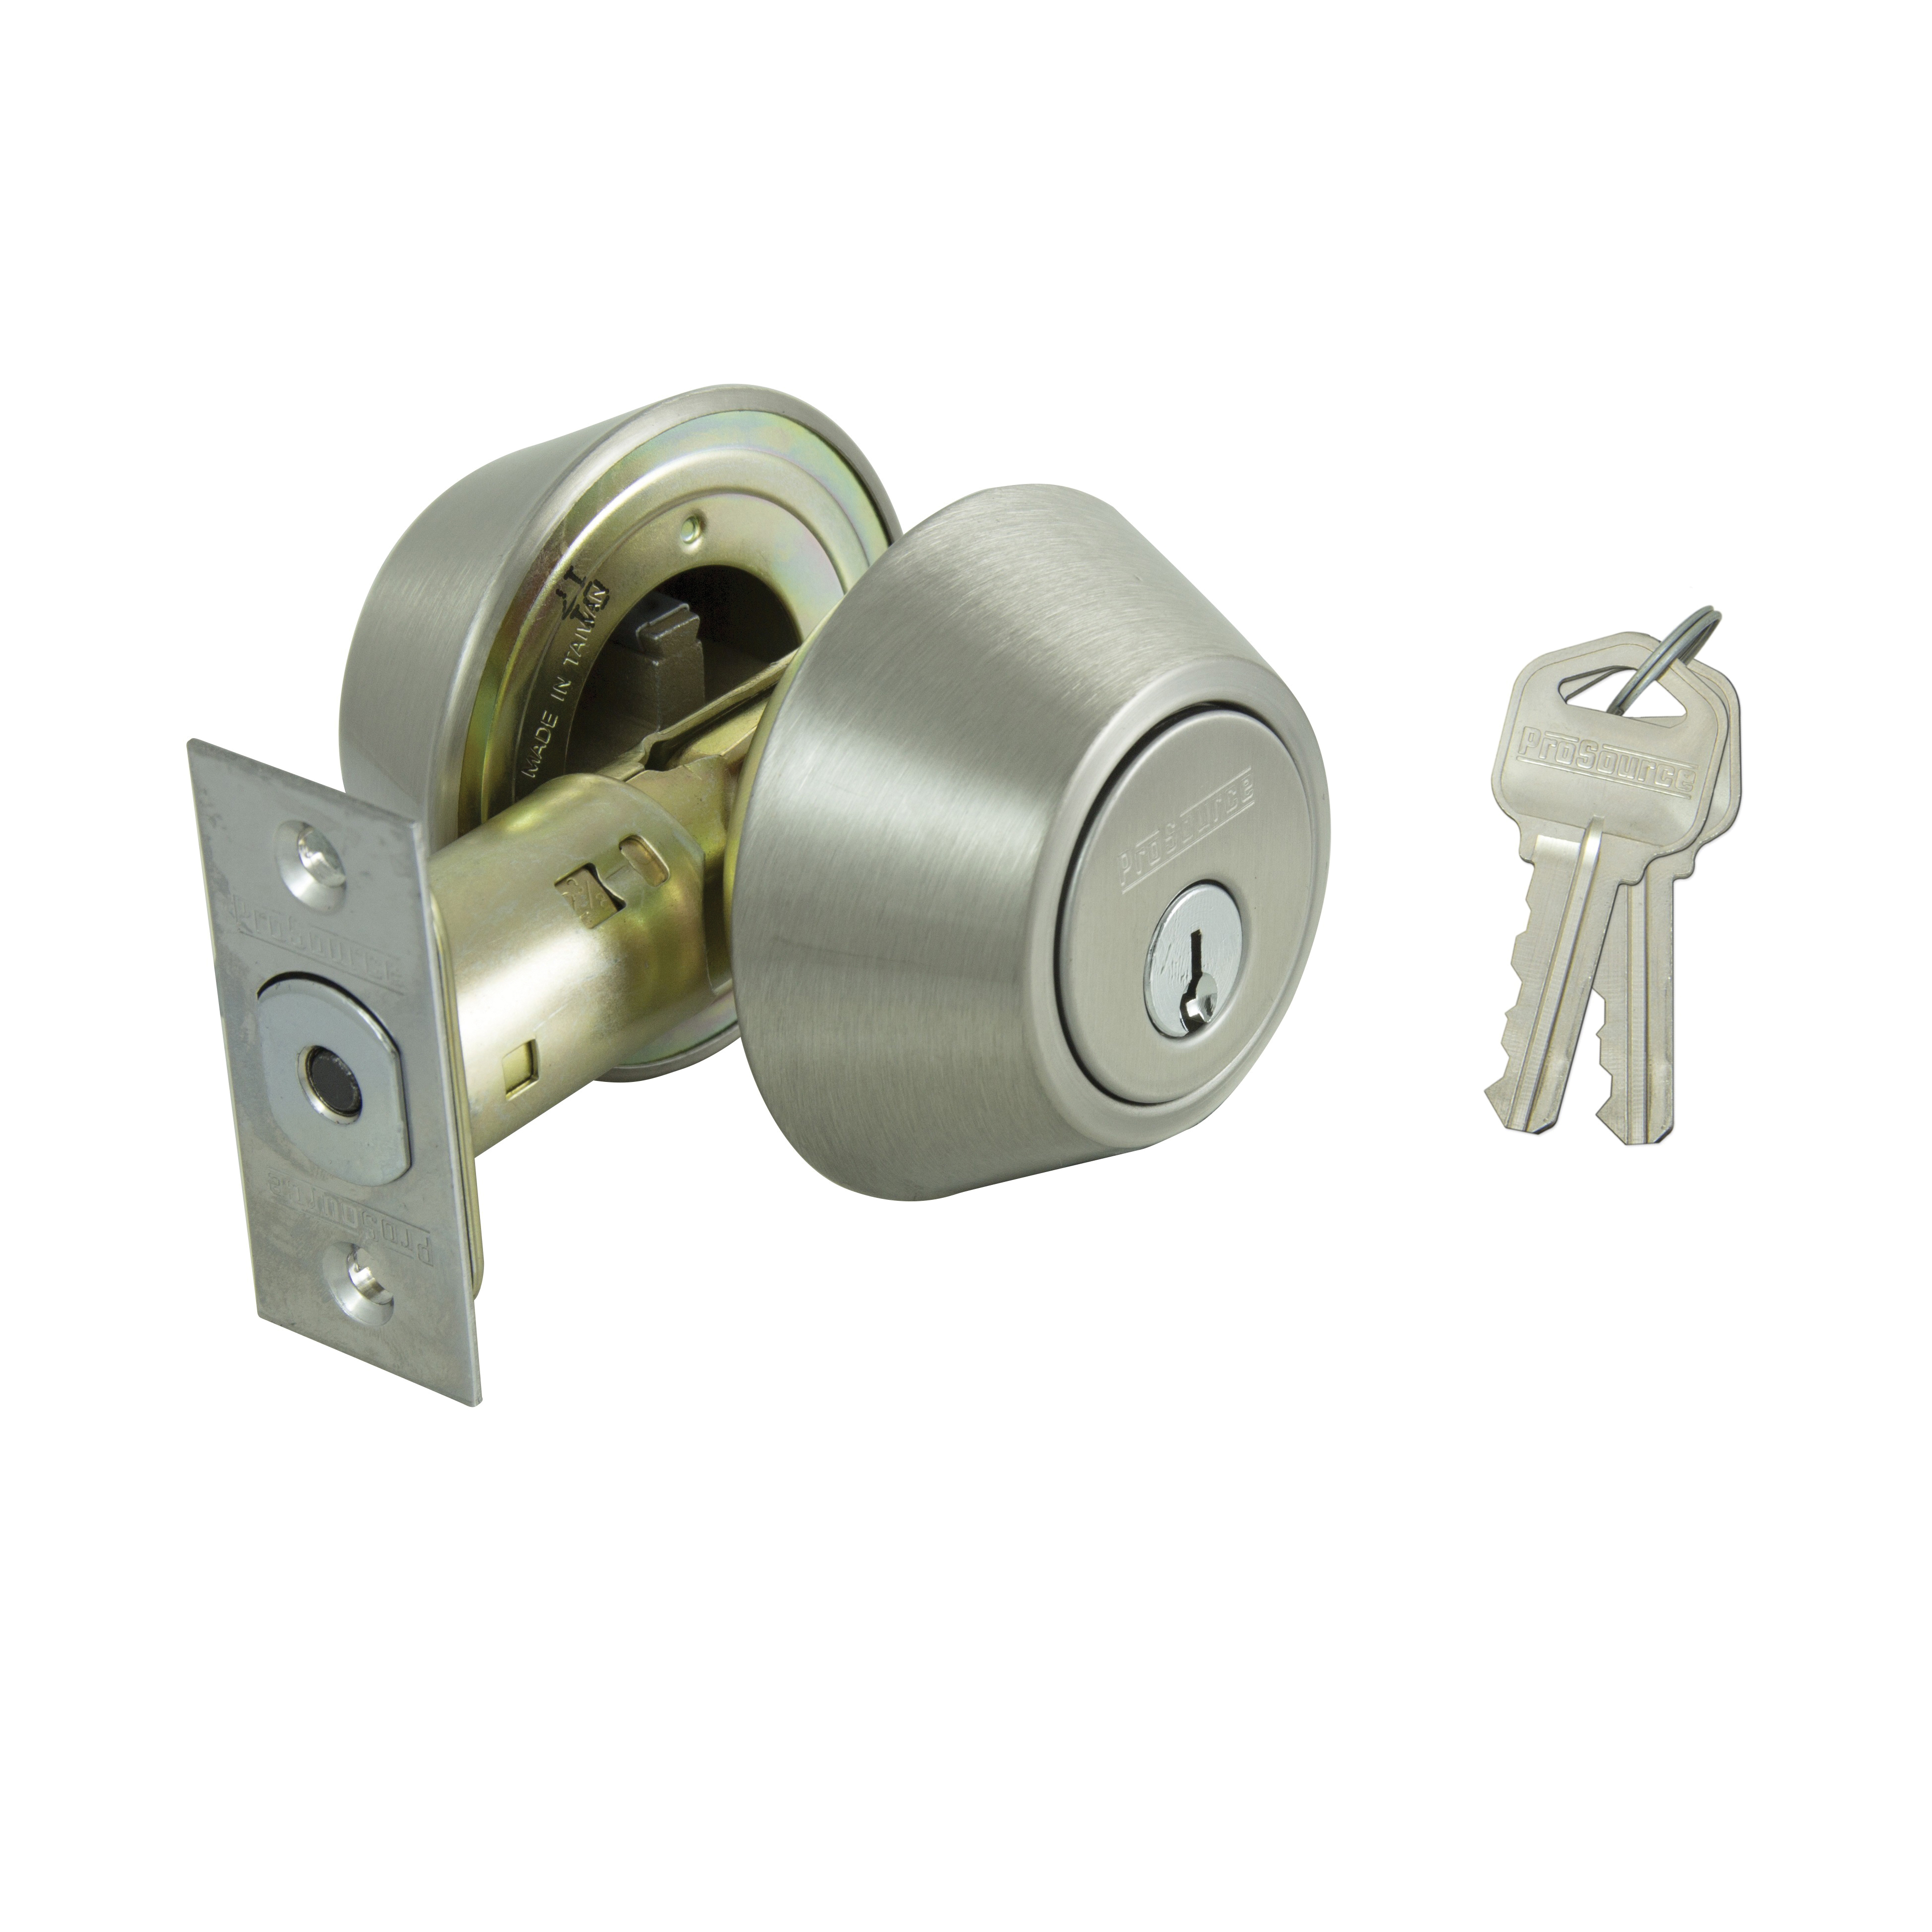 Picture of ProSource DB61V-PS Deadbolt, Metal, Stainless Steel, 2-3/8 to 2-3/4 in Backset, KW1, KA3 Keyway